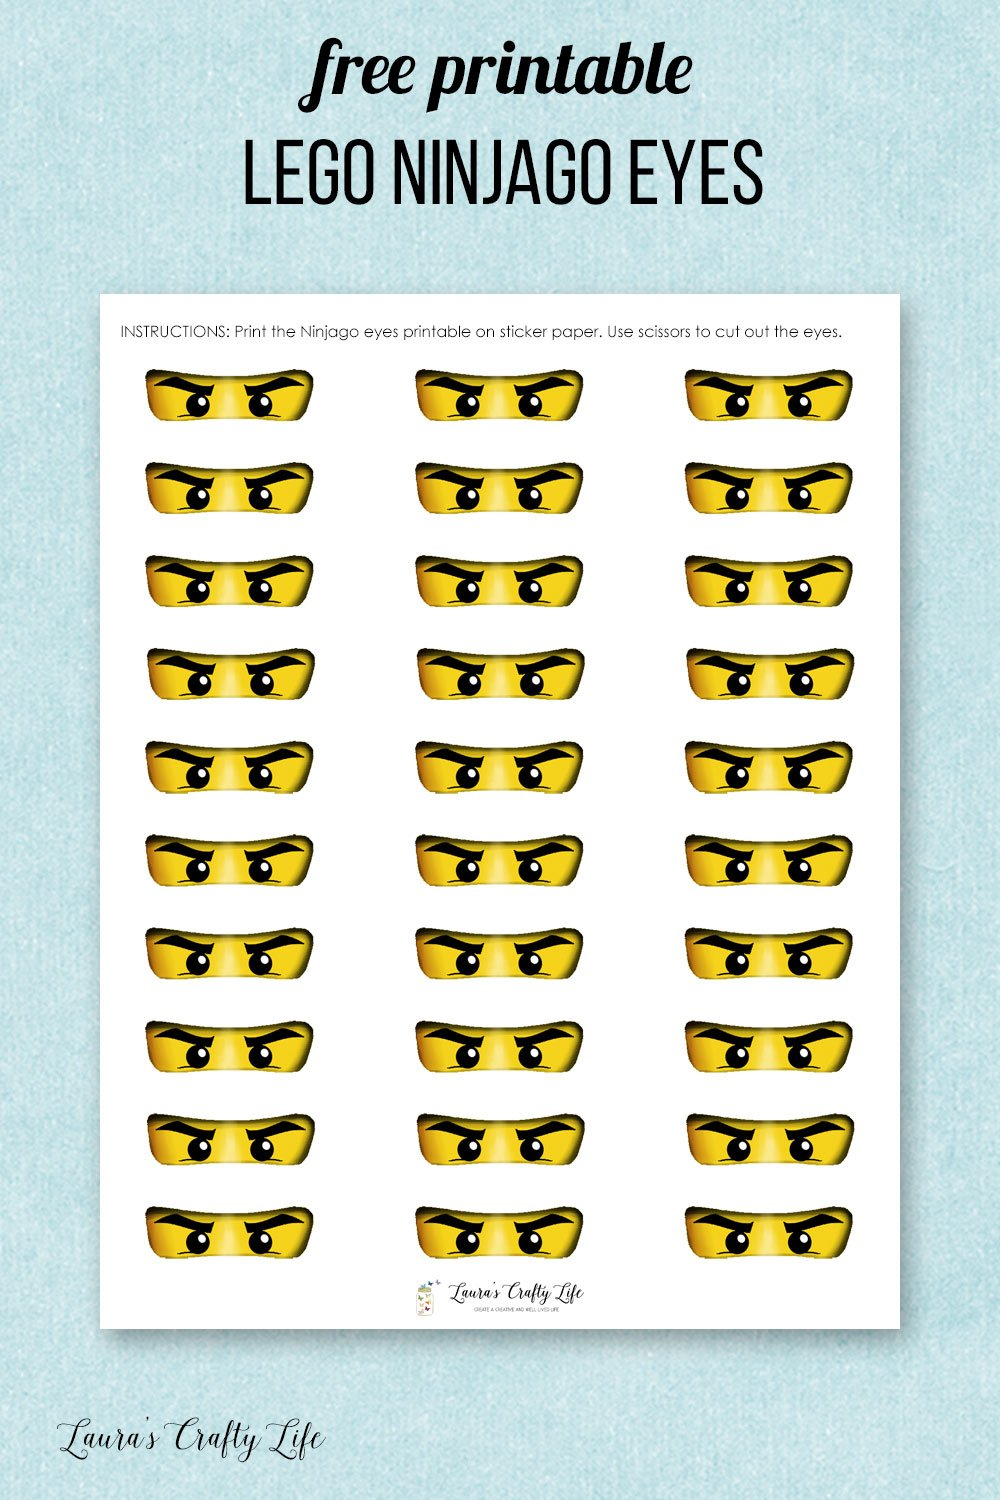 Free printable LEGO Ninjago eyes - use for stickers for your LEGO Ninjago cupcake liners, favor bags, and more! #LEGO #Ninjago #freeprintable #laurascraftylife